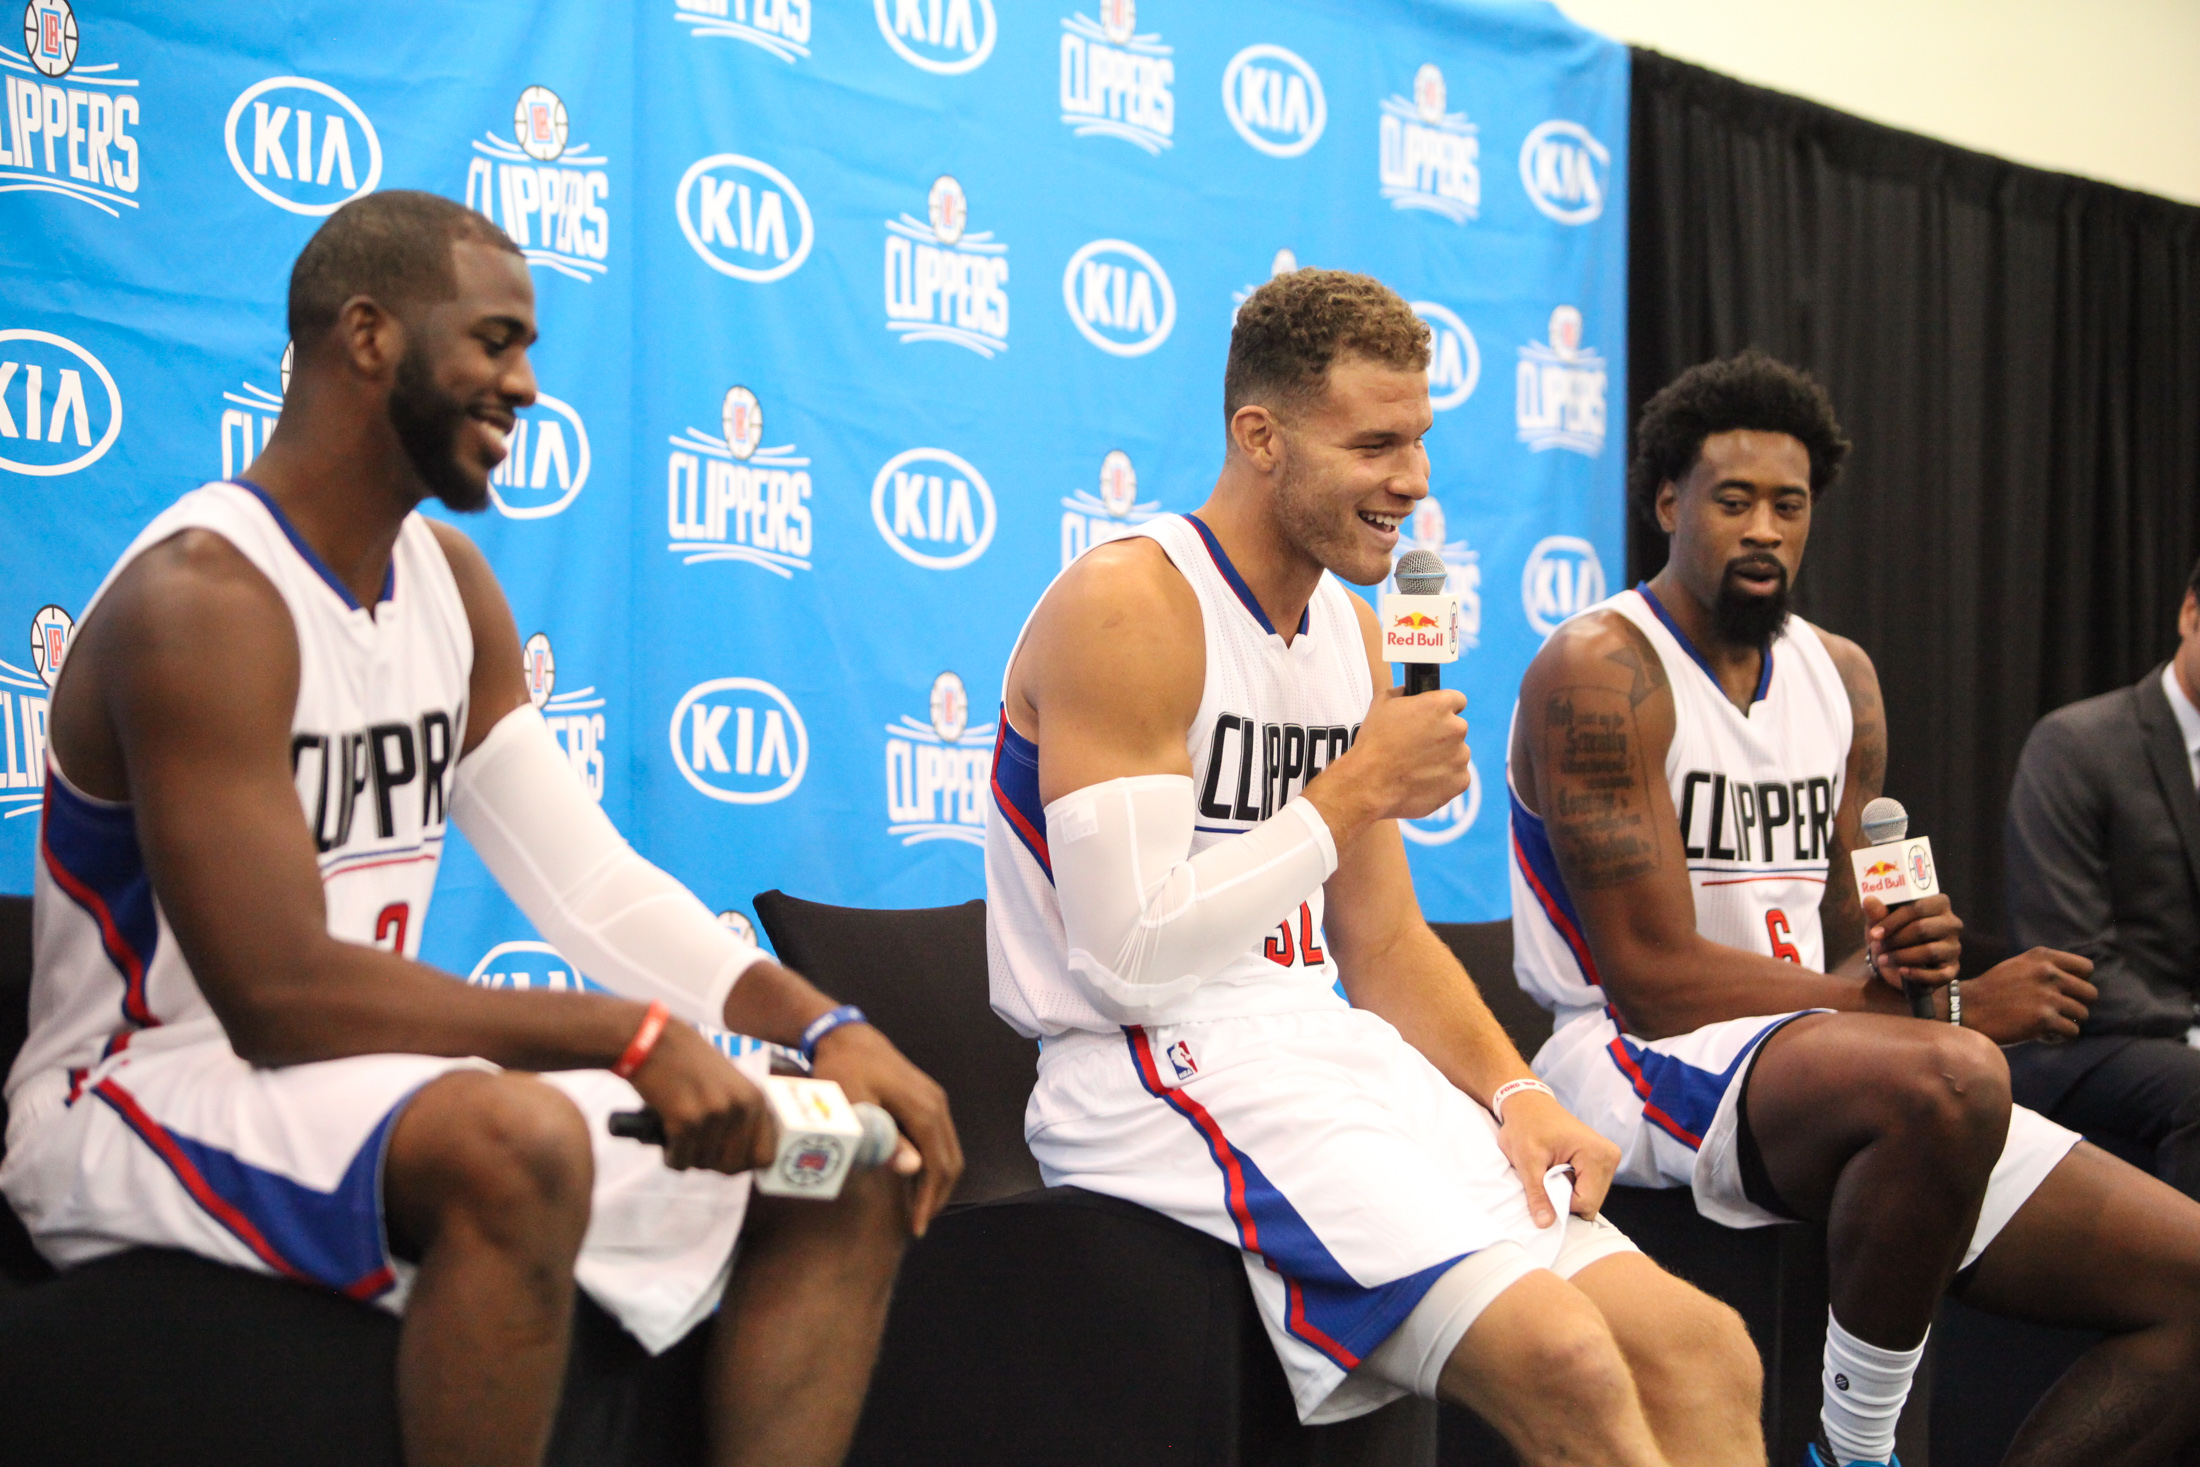 Los Angeles Clippers Host Media Day 2015 - Los Angeles